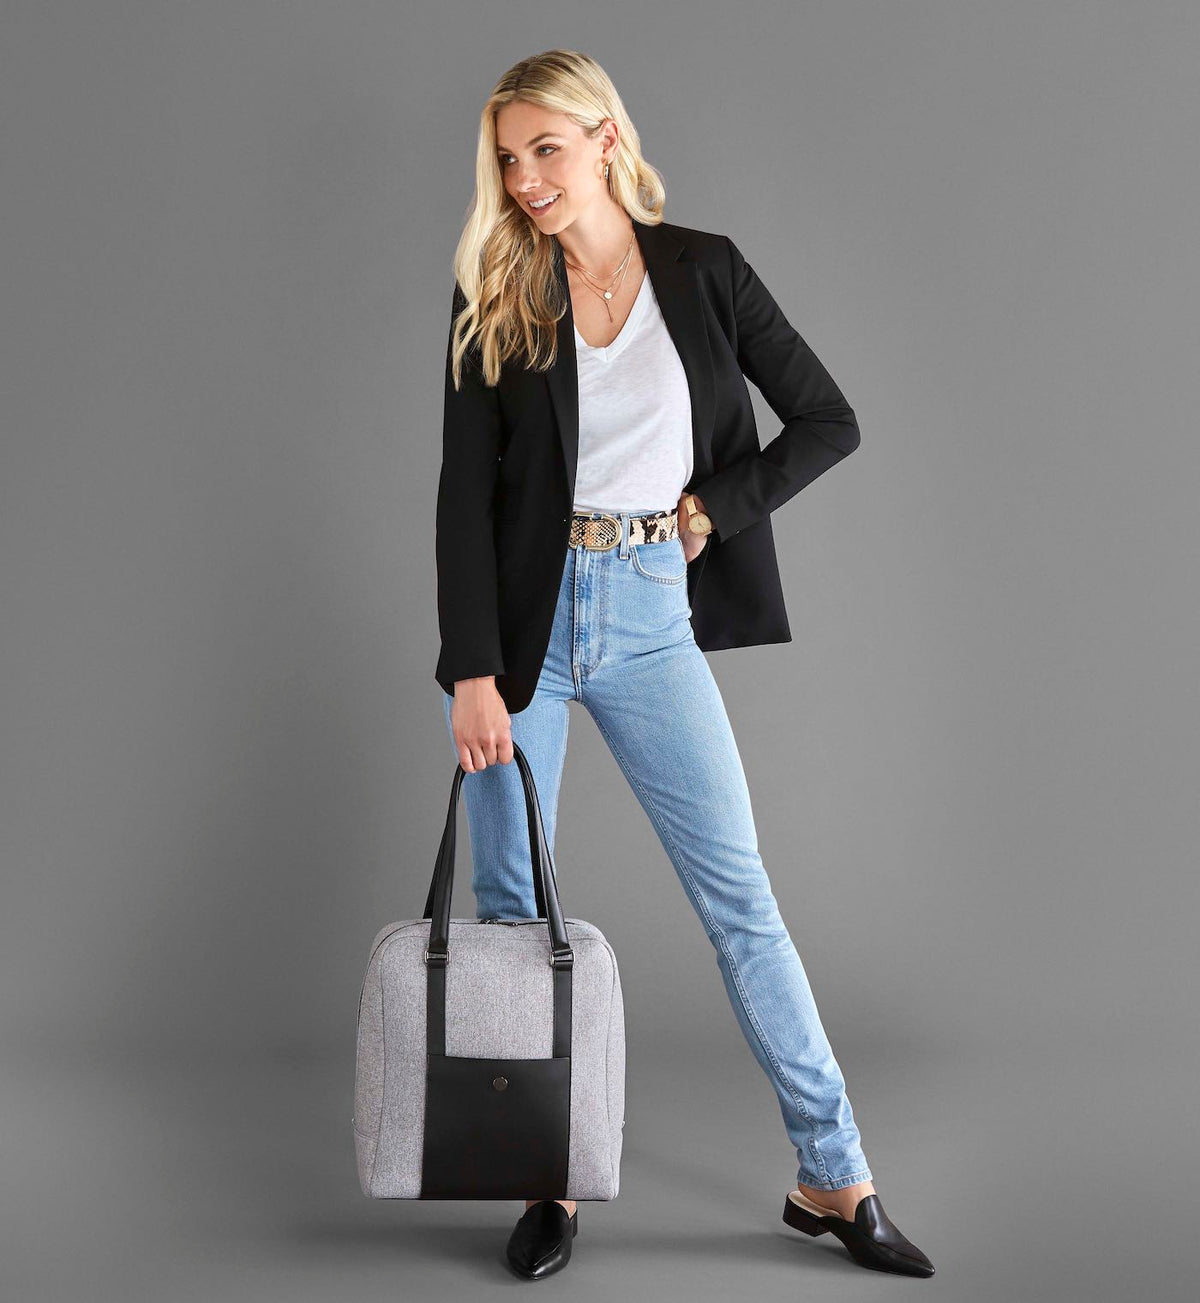 Woman holding fashionable Neoprene grey and black work and gym tote